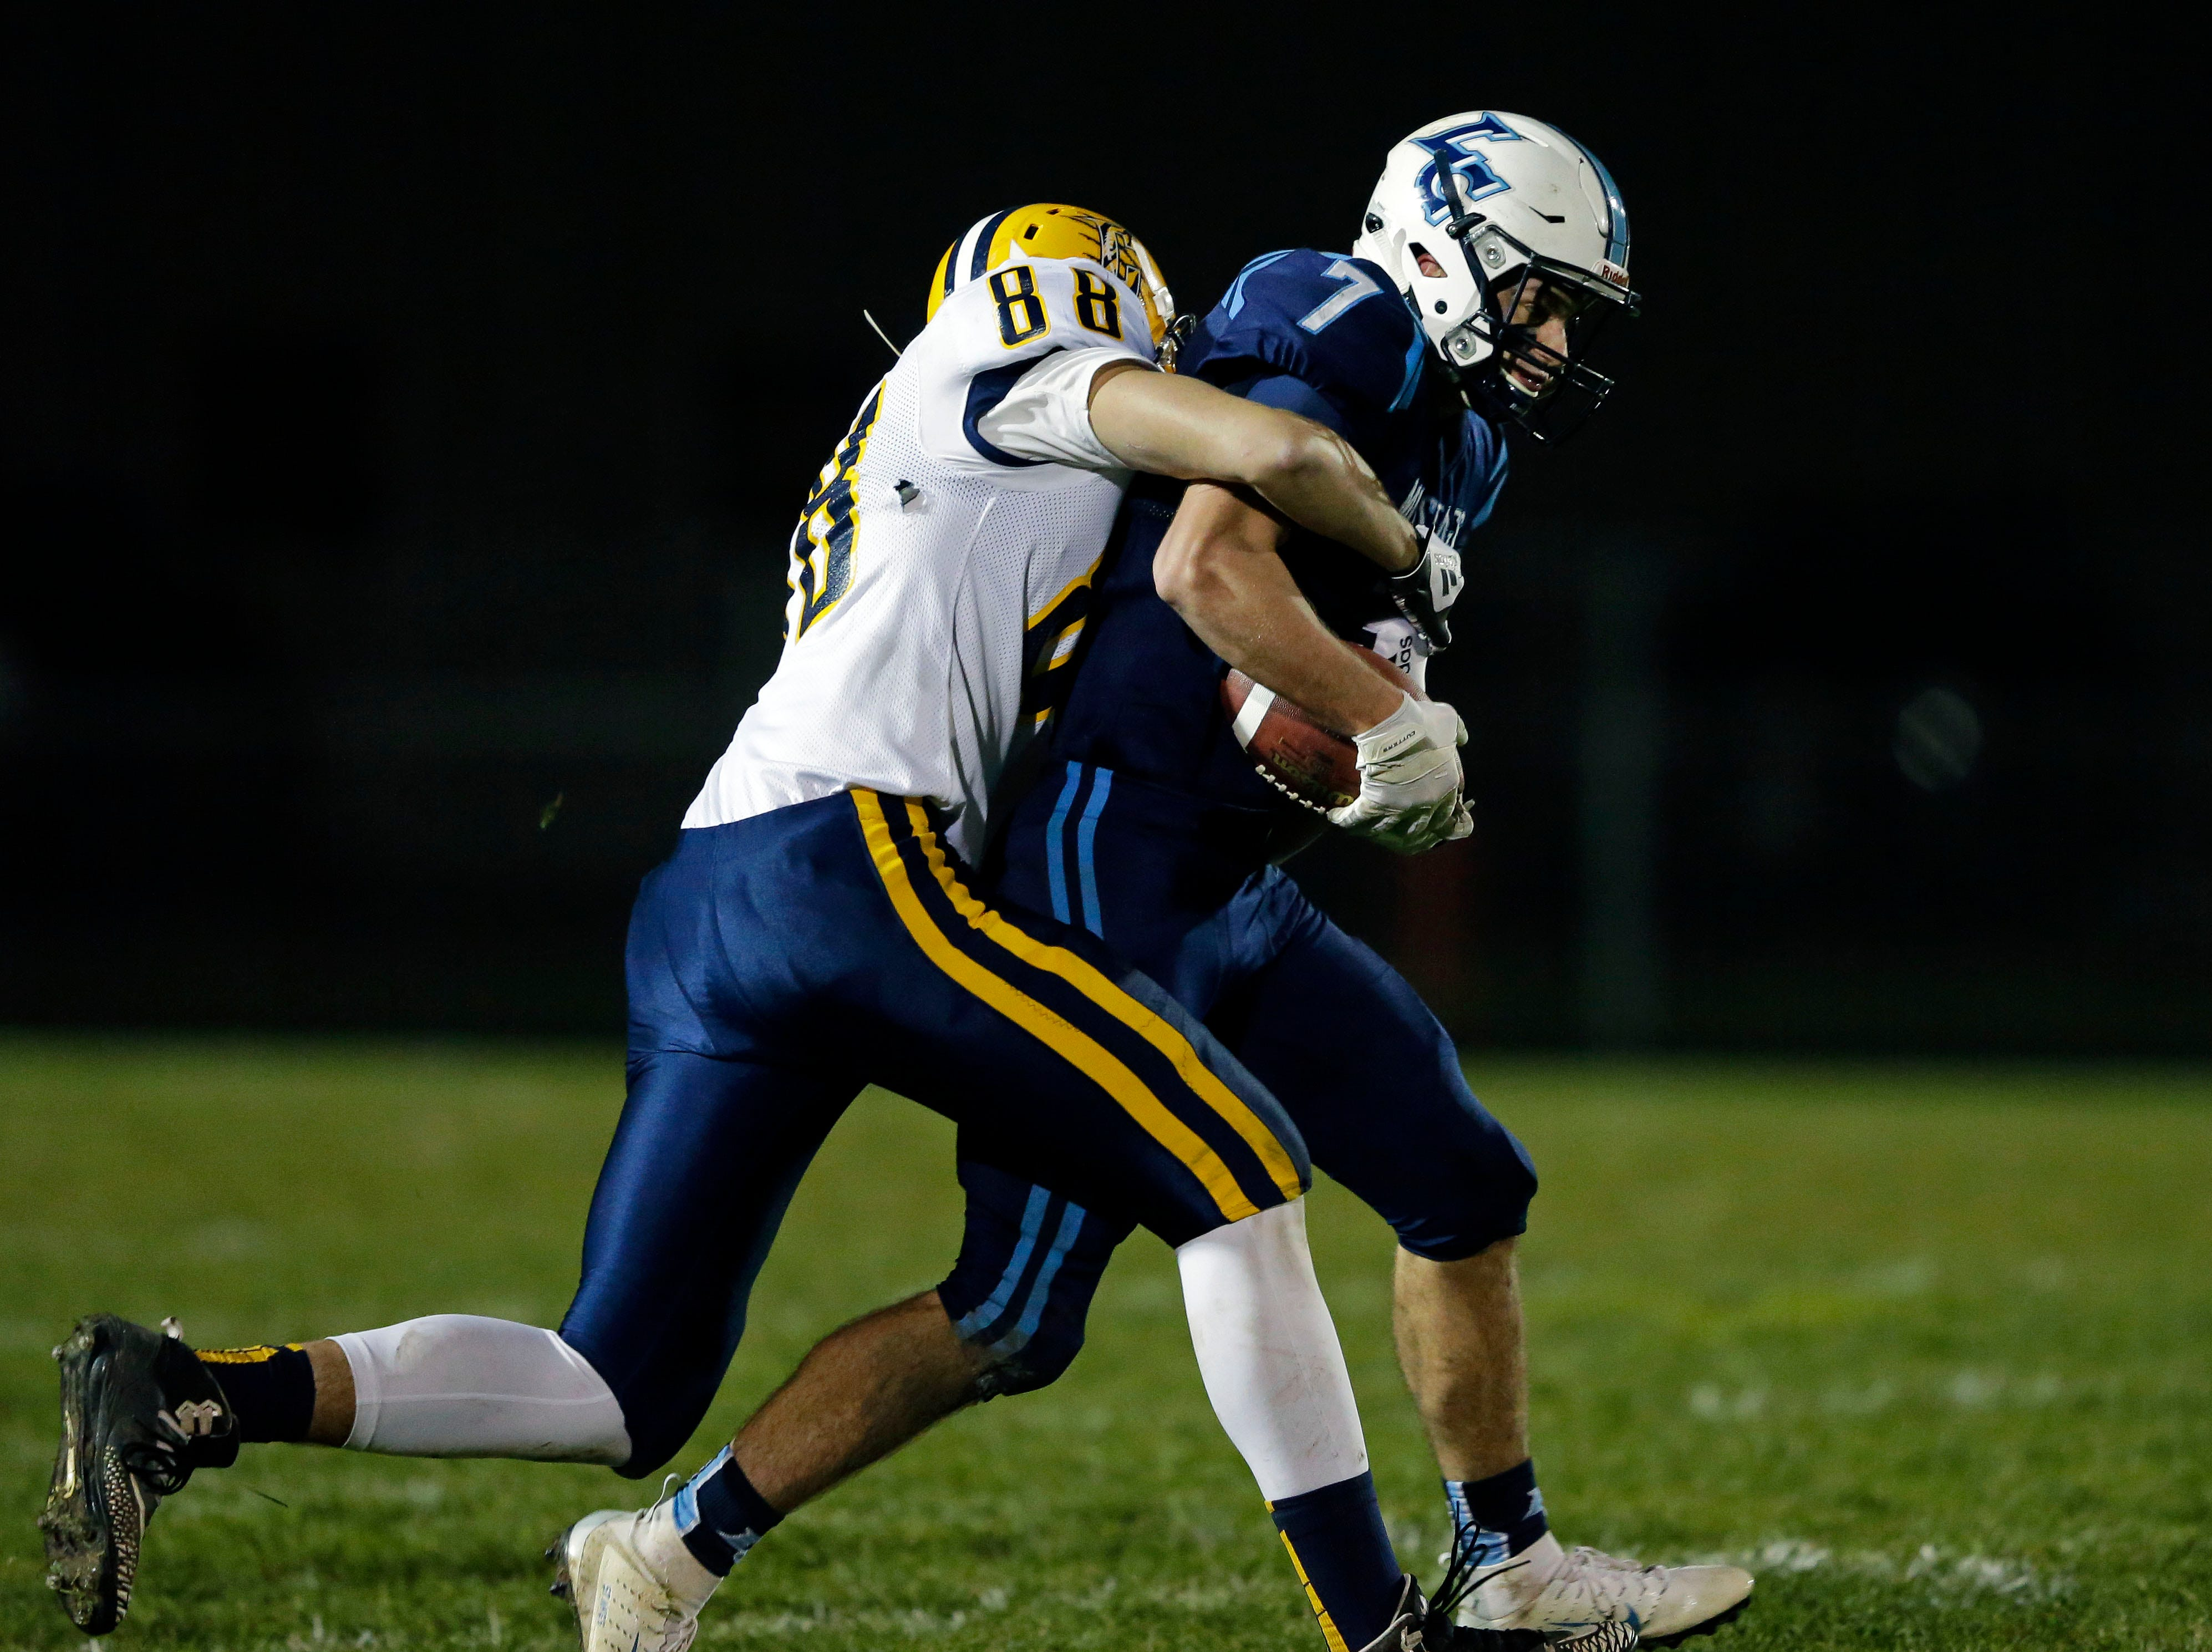 Adam Hietpas of of Little Chute is tackled by Ryan Broeckel of Chilton in a WIAA Division 4 second round football playoff game Friday, October 26, 2018, at Little Chute High School in Little Chute, Wis.Ron Page/USA TODAY NETWORK-Wisconsin